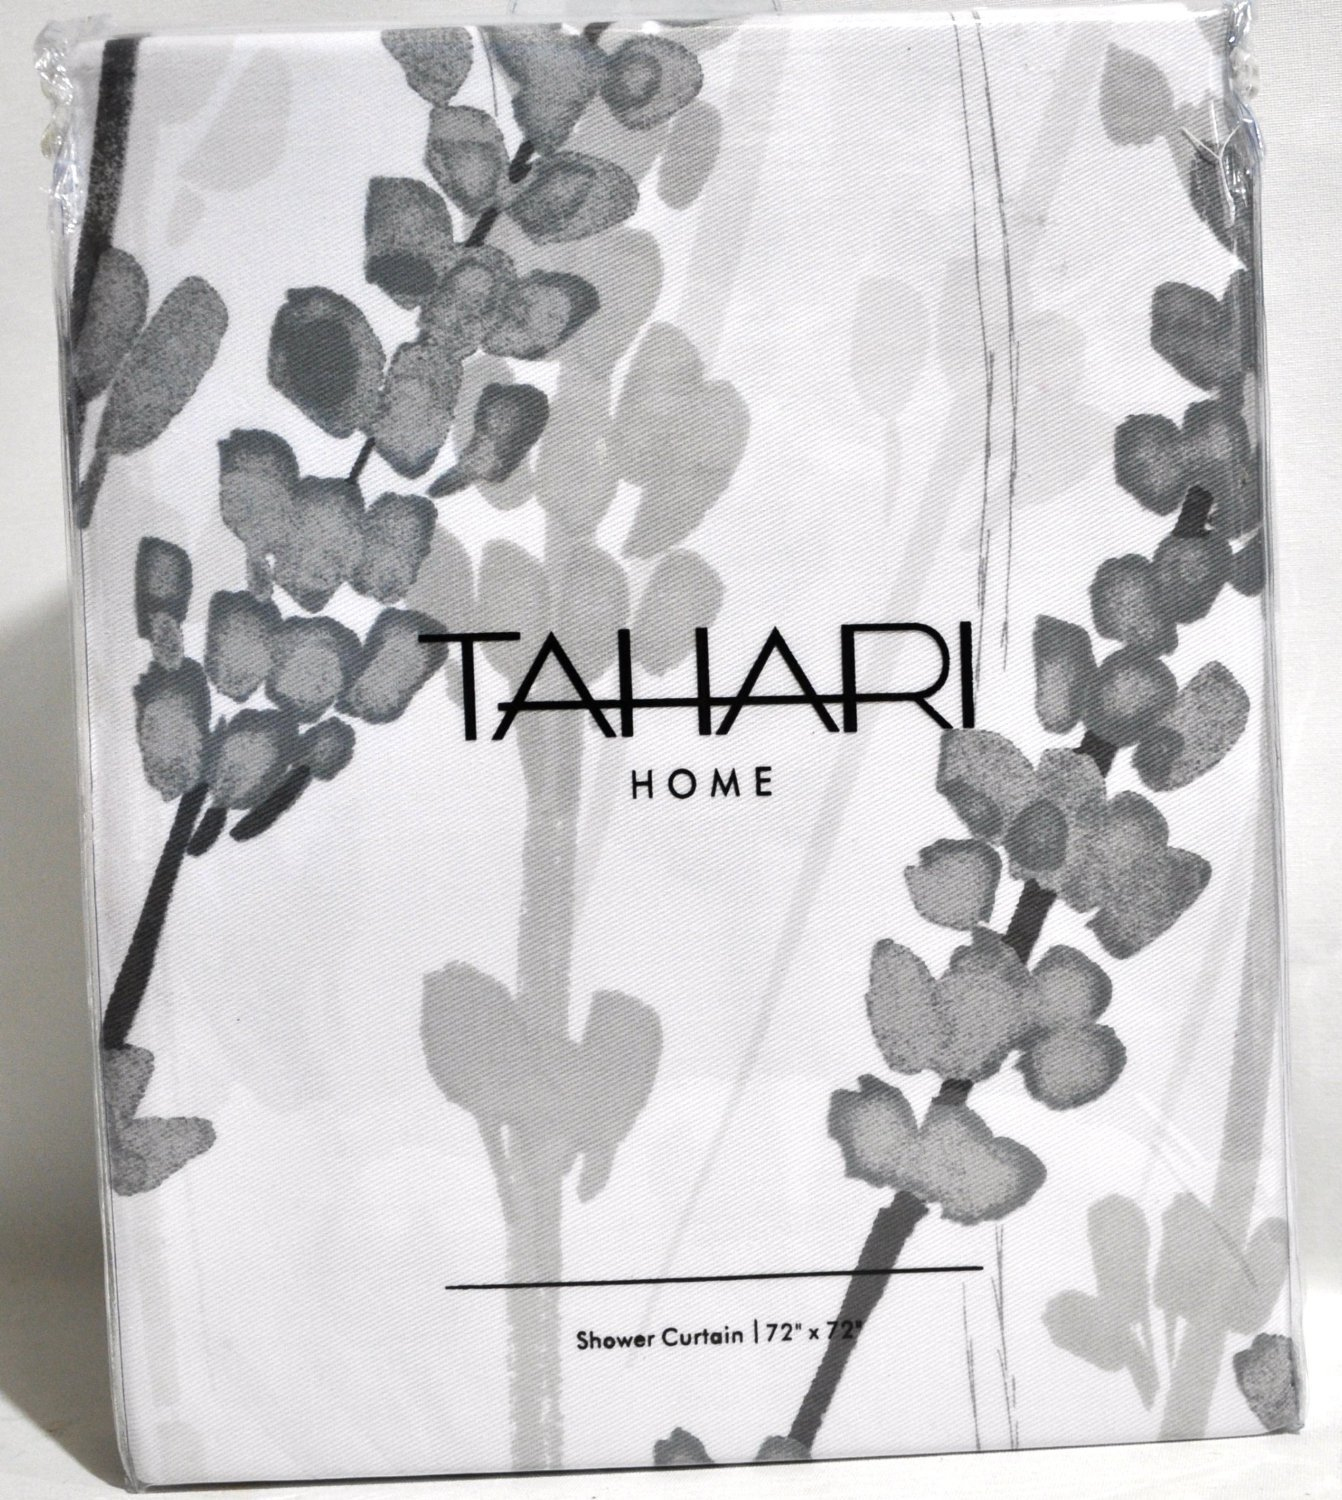 Tahari Luxury Cotton Blend Shower Curtain Printemps Floral Branches Charcoal Grey White Botanical Nature By Home